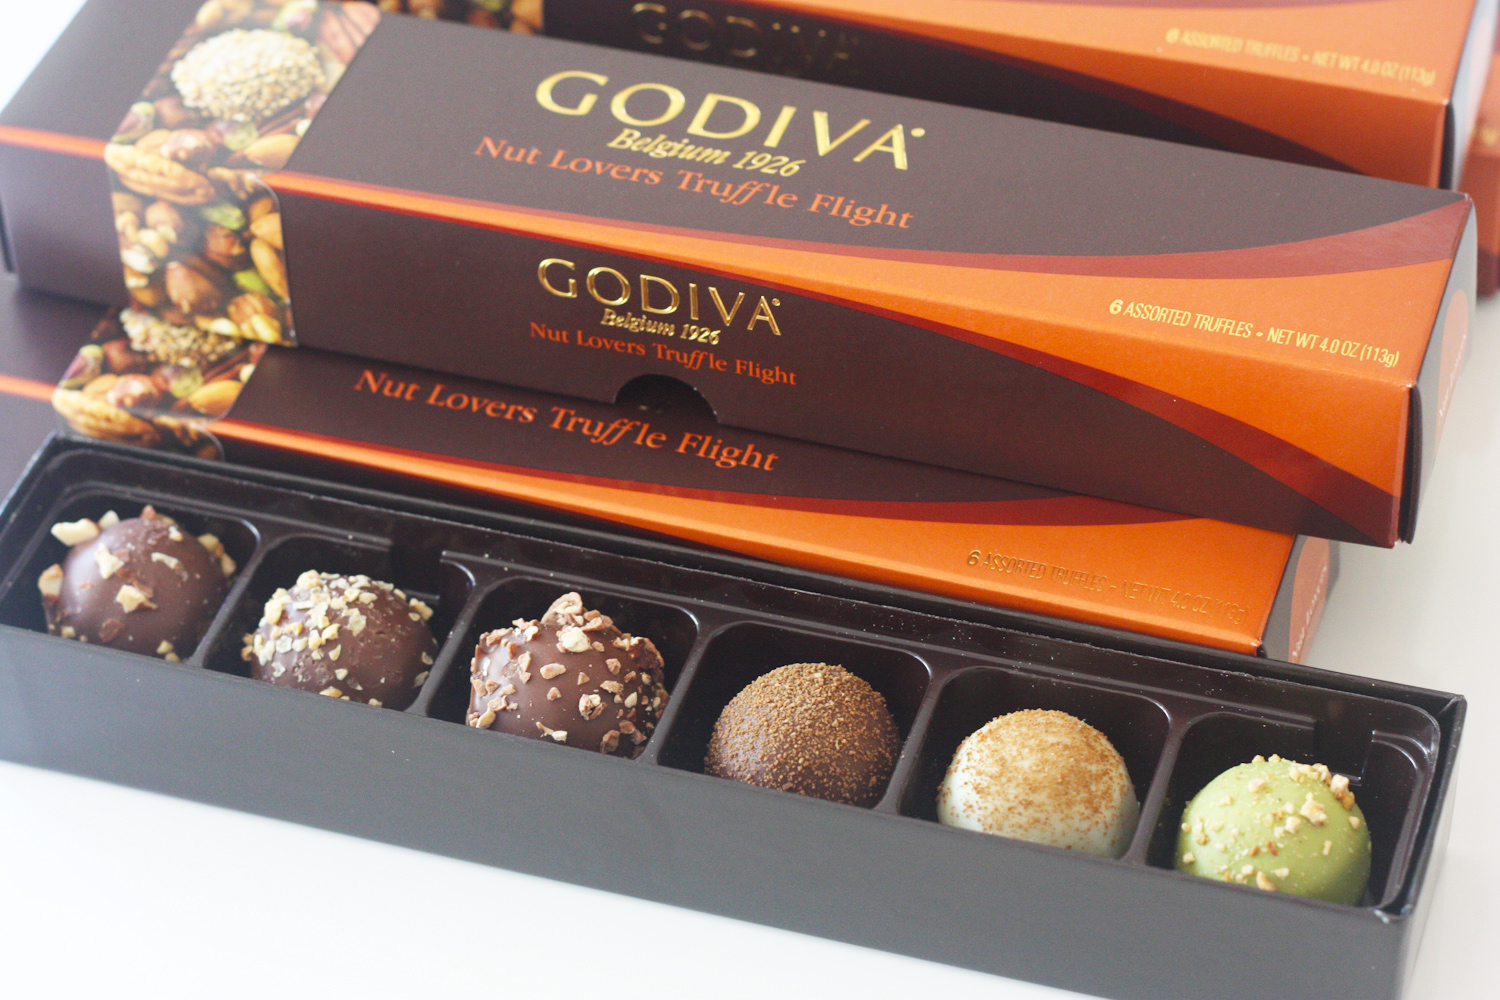 Pairing food and wine with chocolate truffles catch my party for Go diva